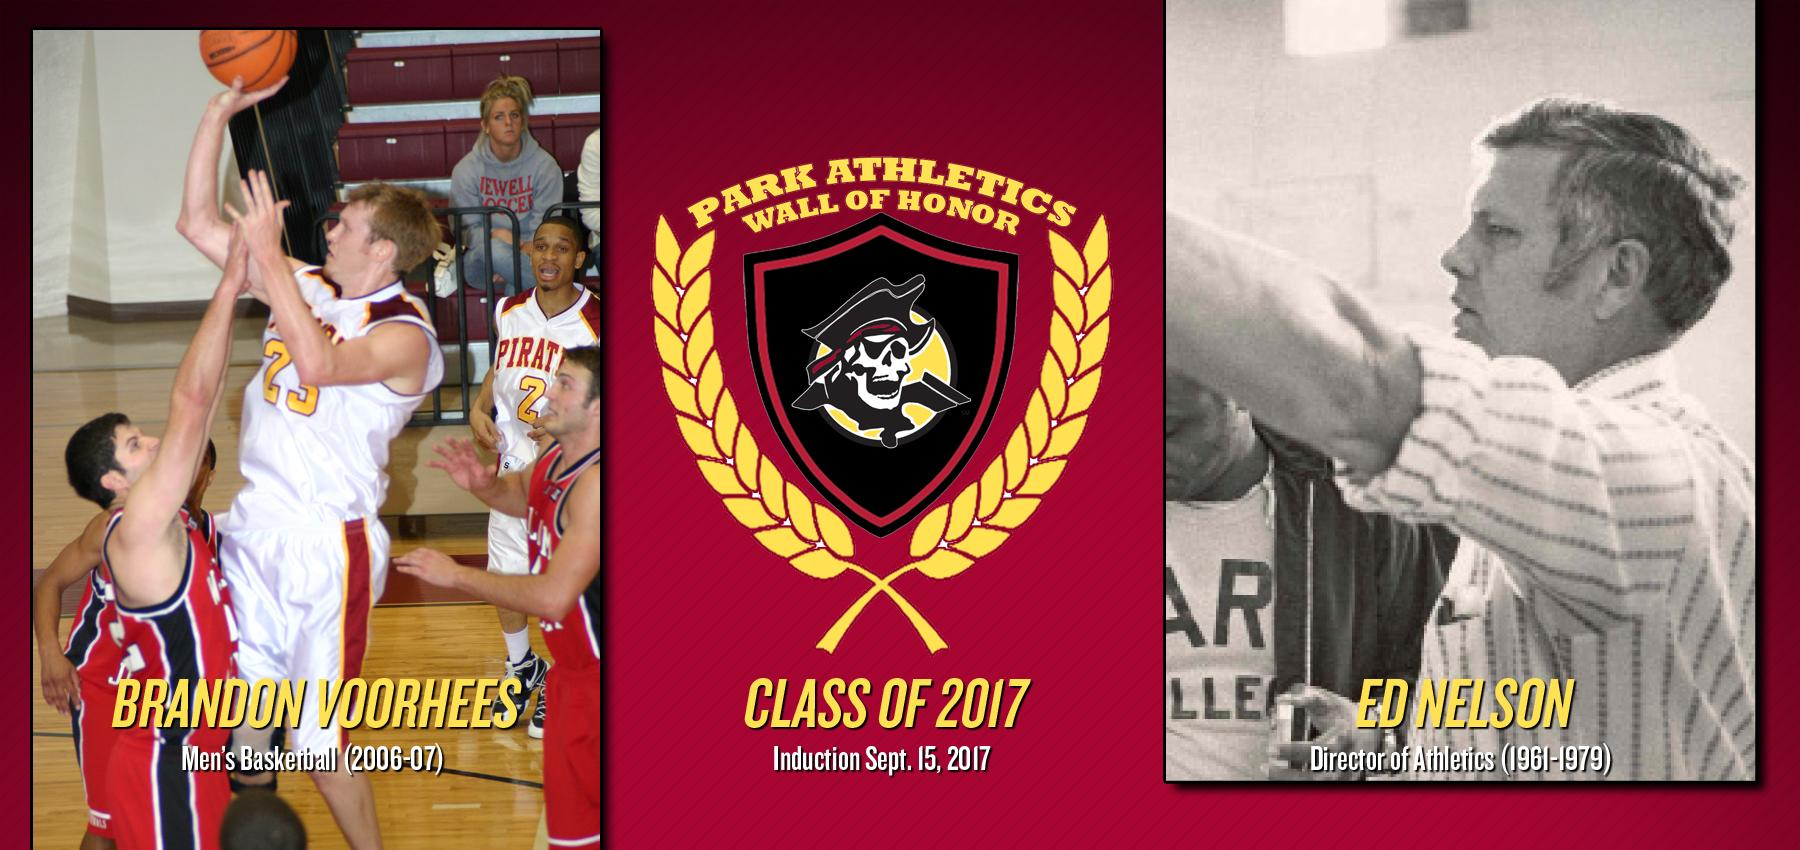 Ed Nelson, Brandon Voorhees Named 2017 Inductees to Park Athletics Wall of Honor; Induction Set for Sept. 15